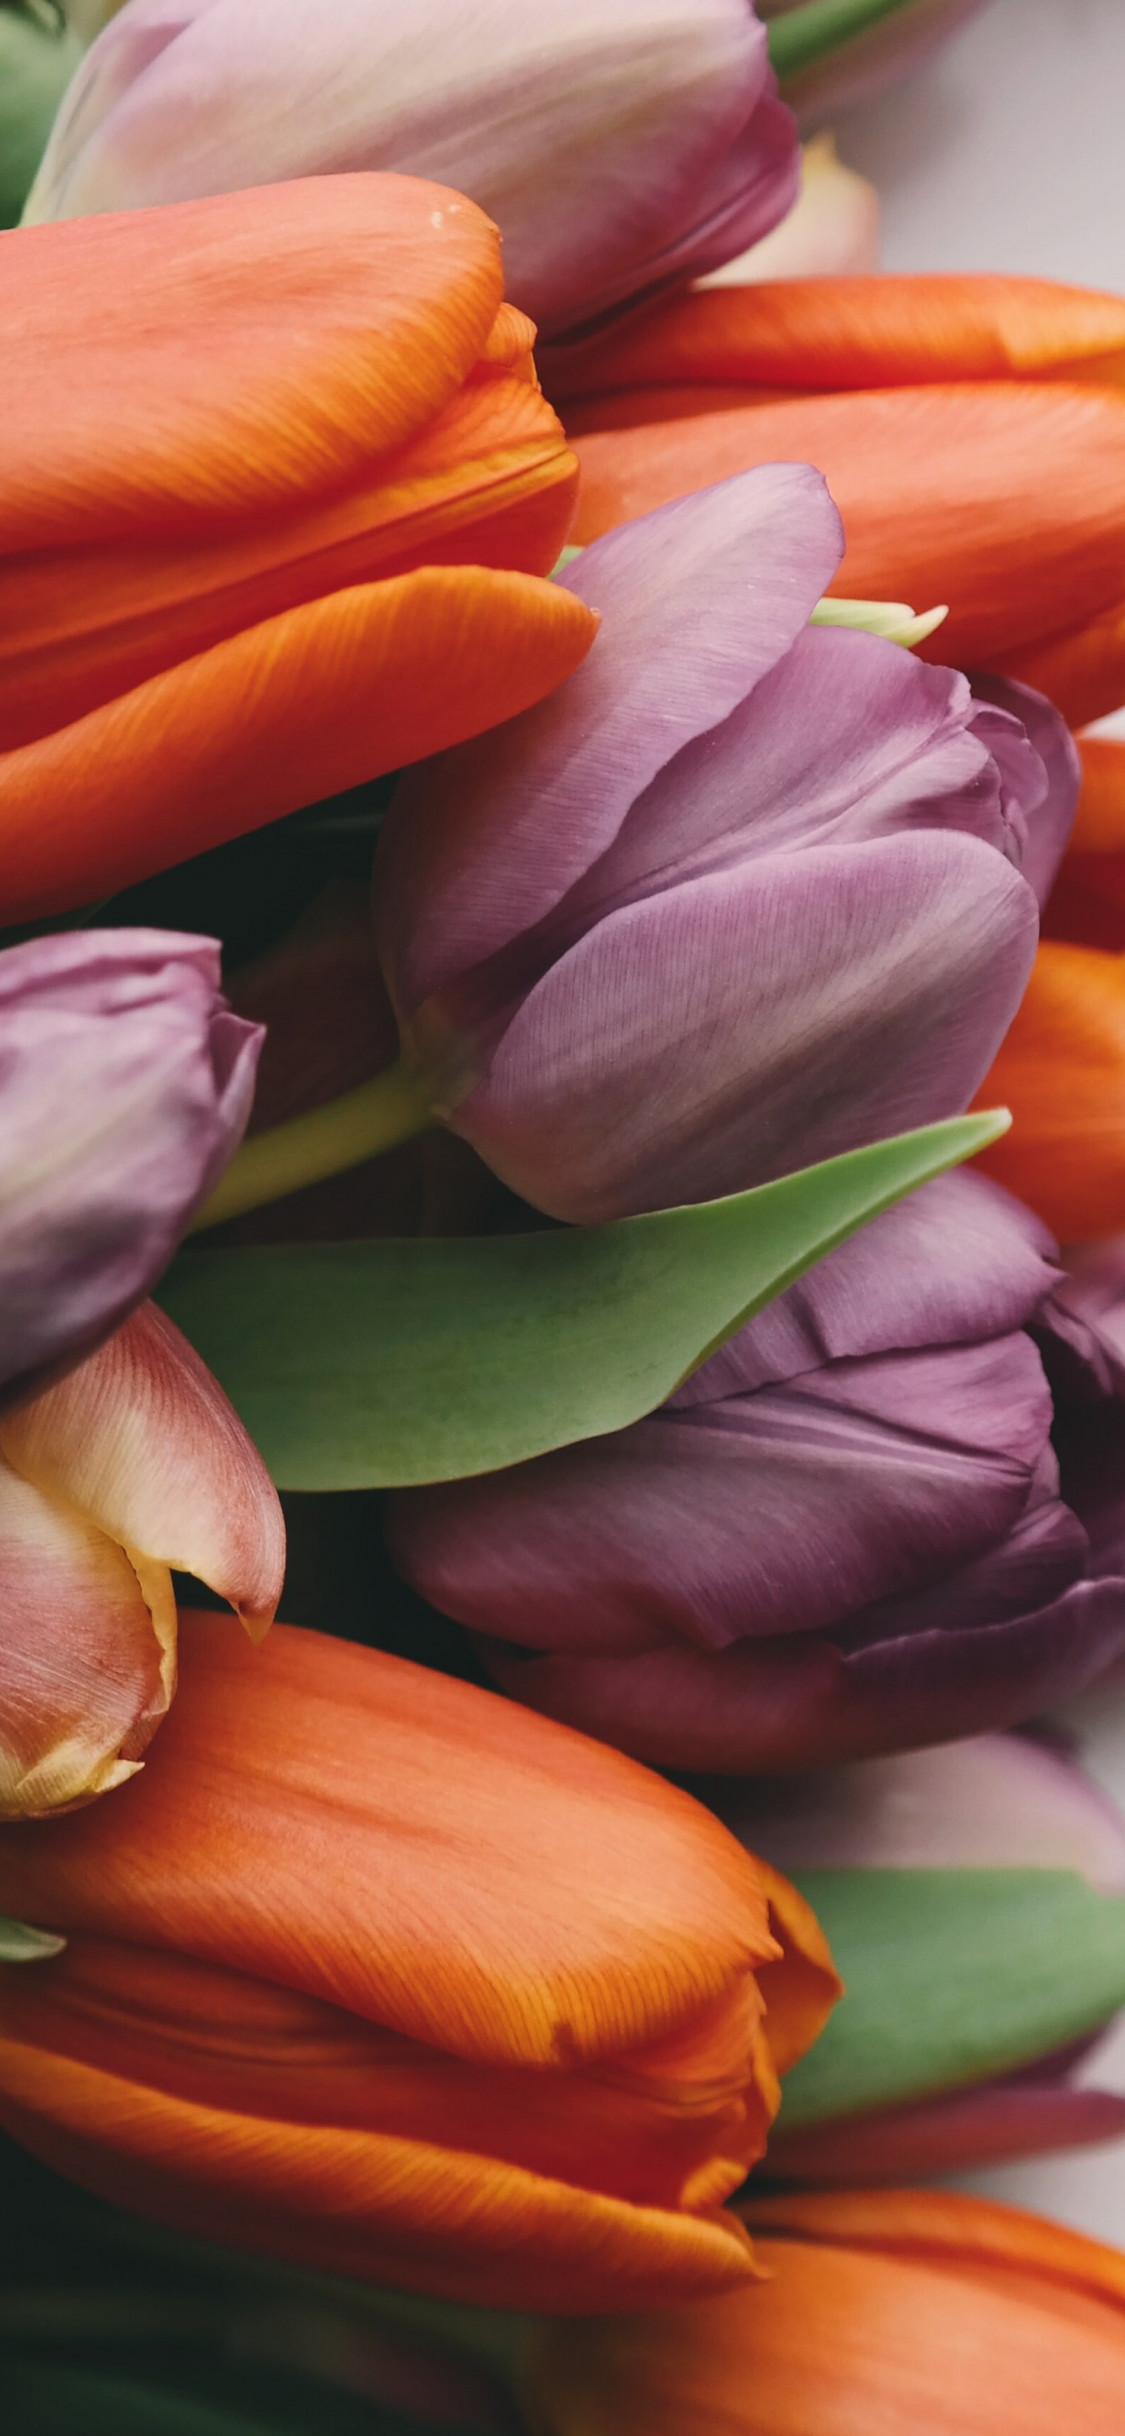 Tulips with love wallpaper 1125x2436